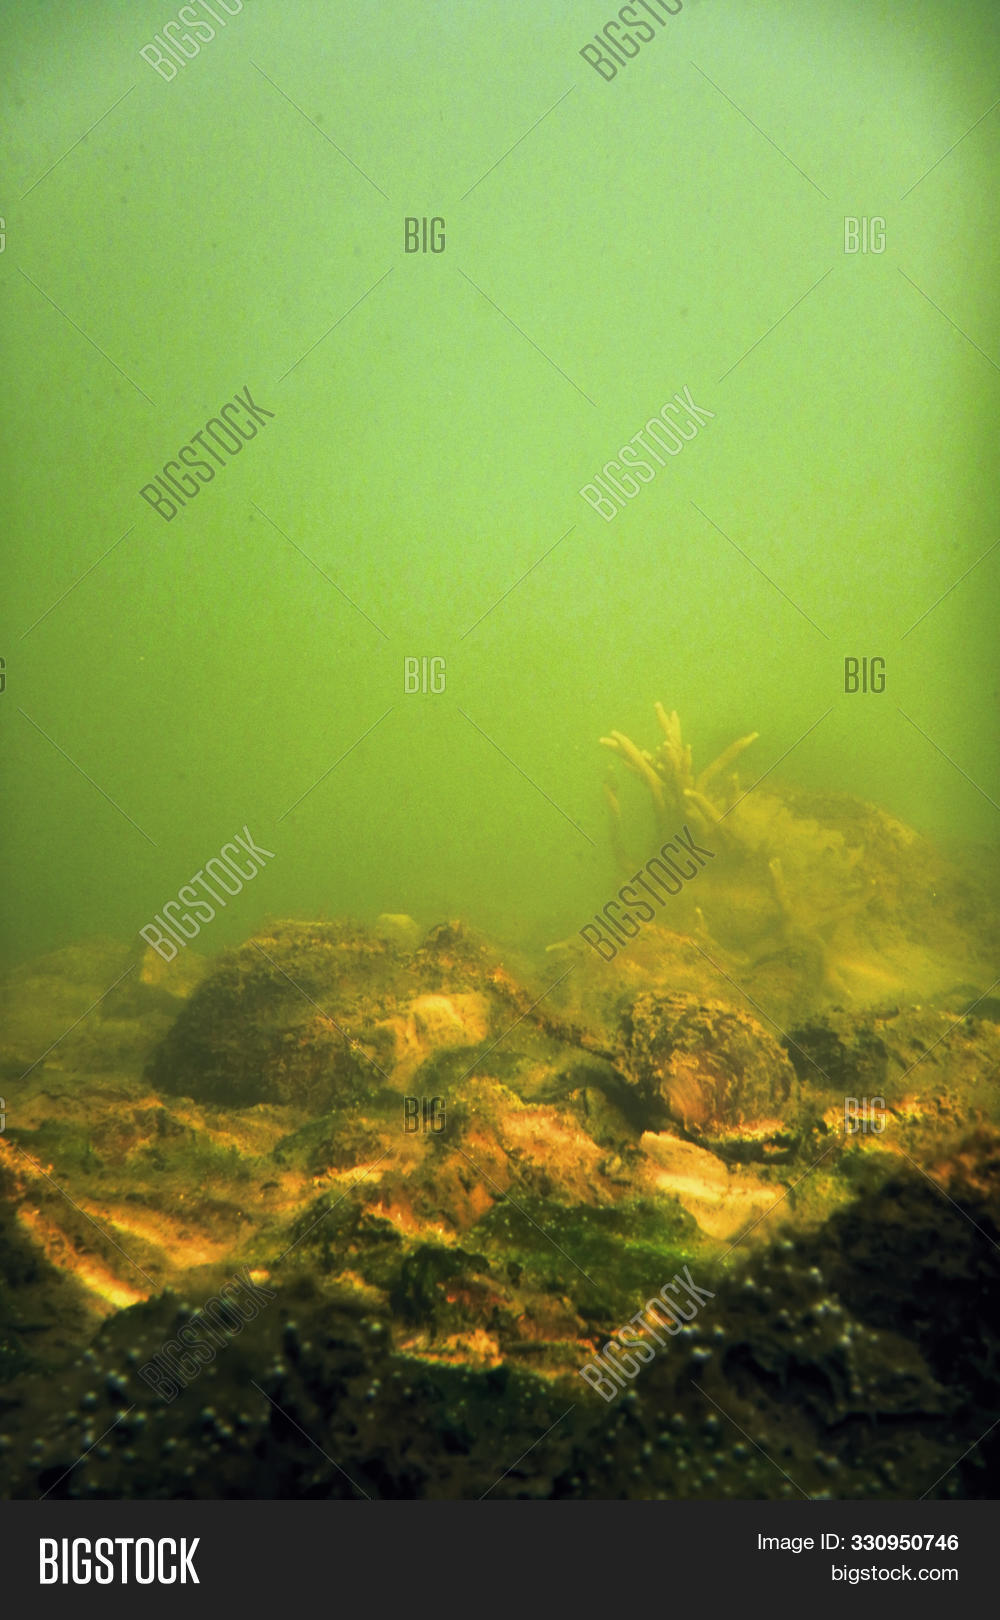 Freshwater,Sponge,Underwater,algae,amazing,aquaculture,aquarium,aquatic,background,beautiful,beauty,blue,branch,clear,cold,color,colorful,deep,ecosystem,environment,fish,flora,green,group,habitat,lacustris,lake,macro,natural,nature,outdoors,pond,red,river,scuba,spongilla,spongillidae,summer,tropical,under,water,weird,wild,wildlife,yellow